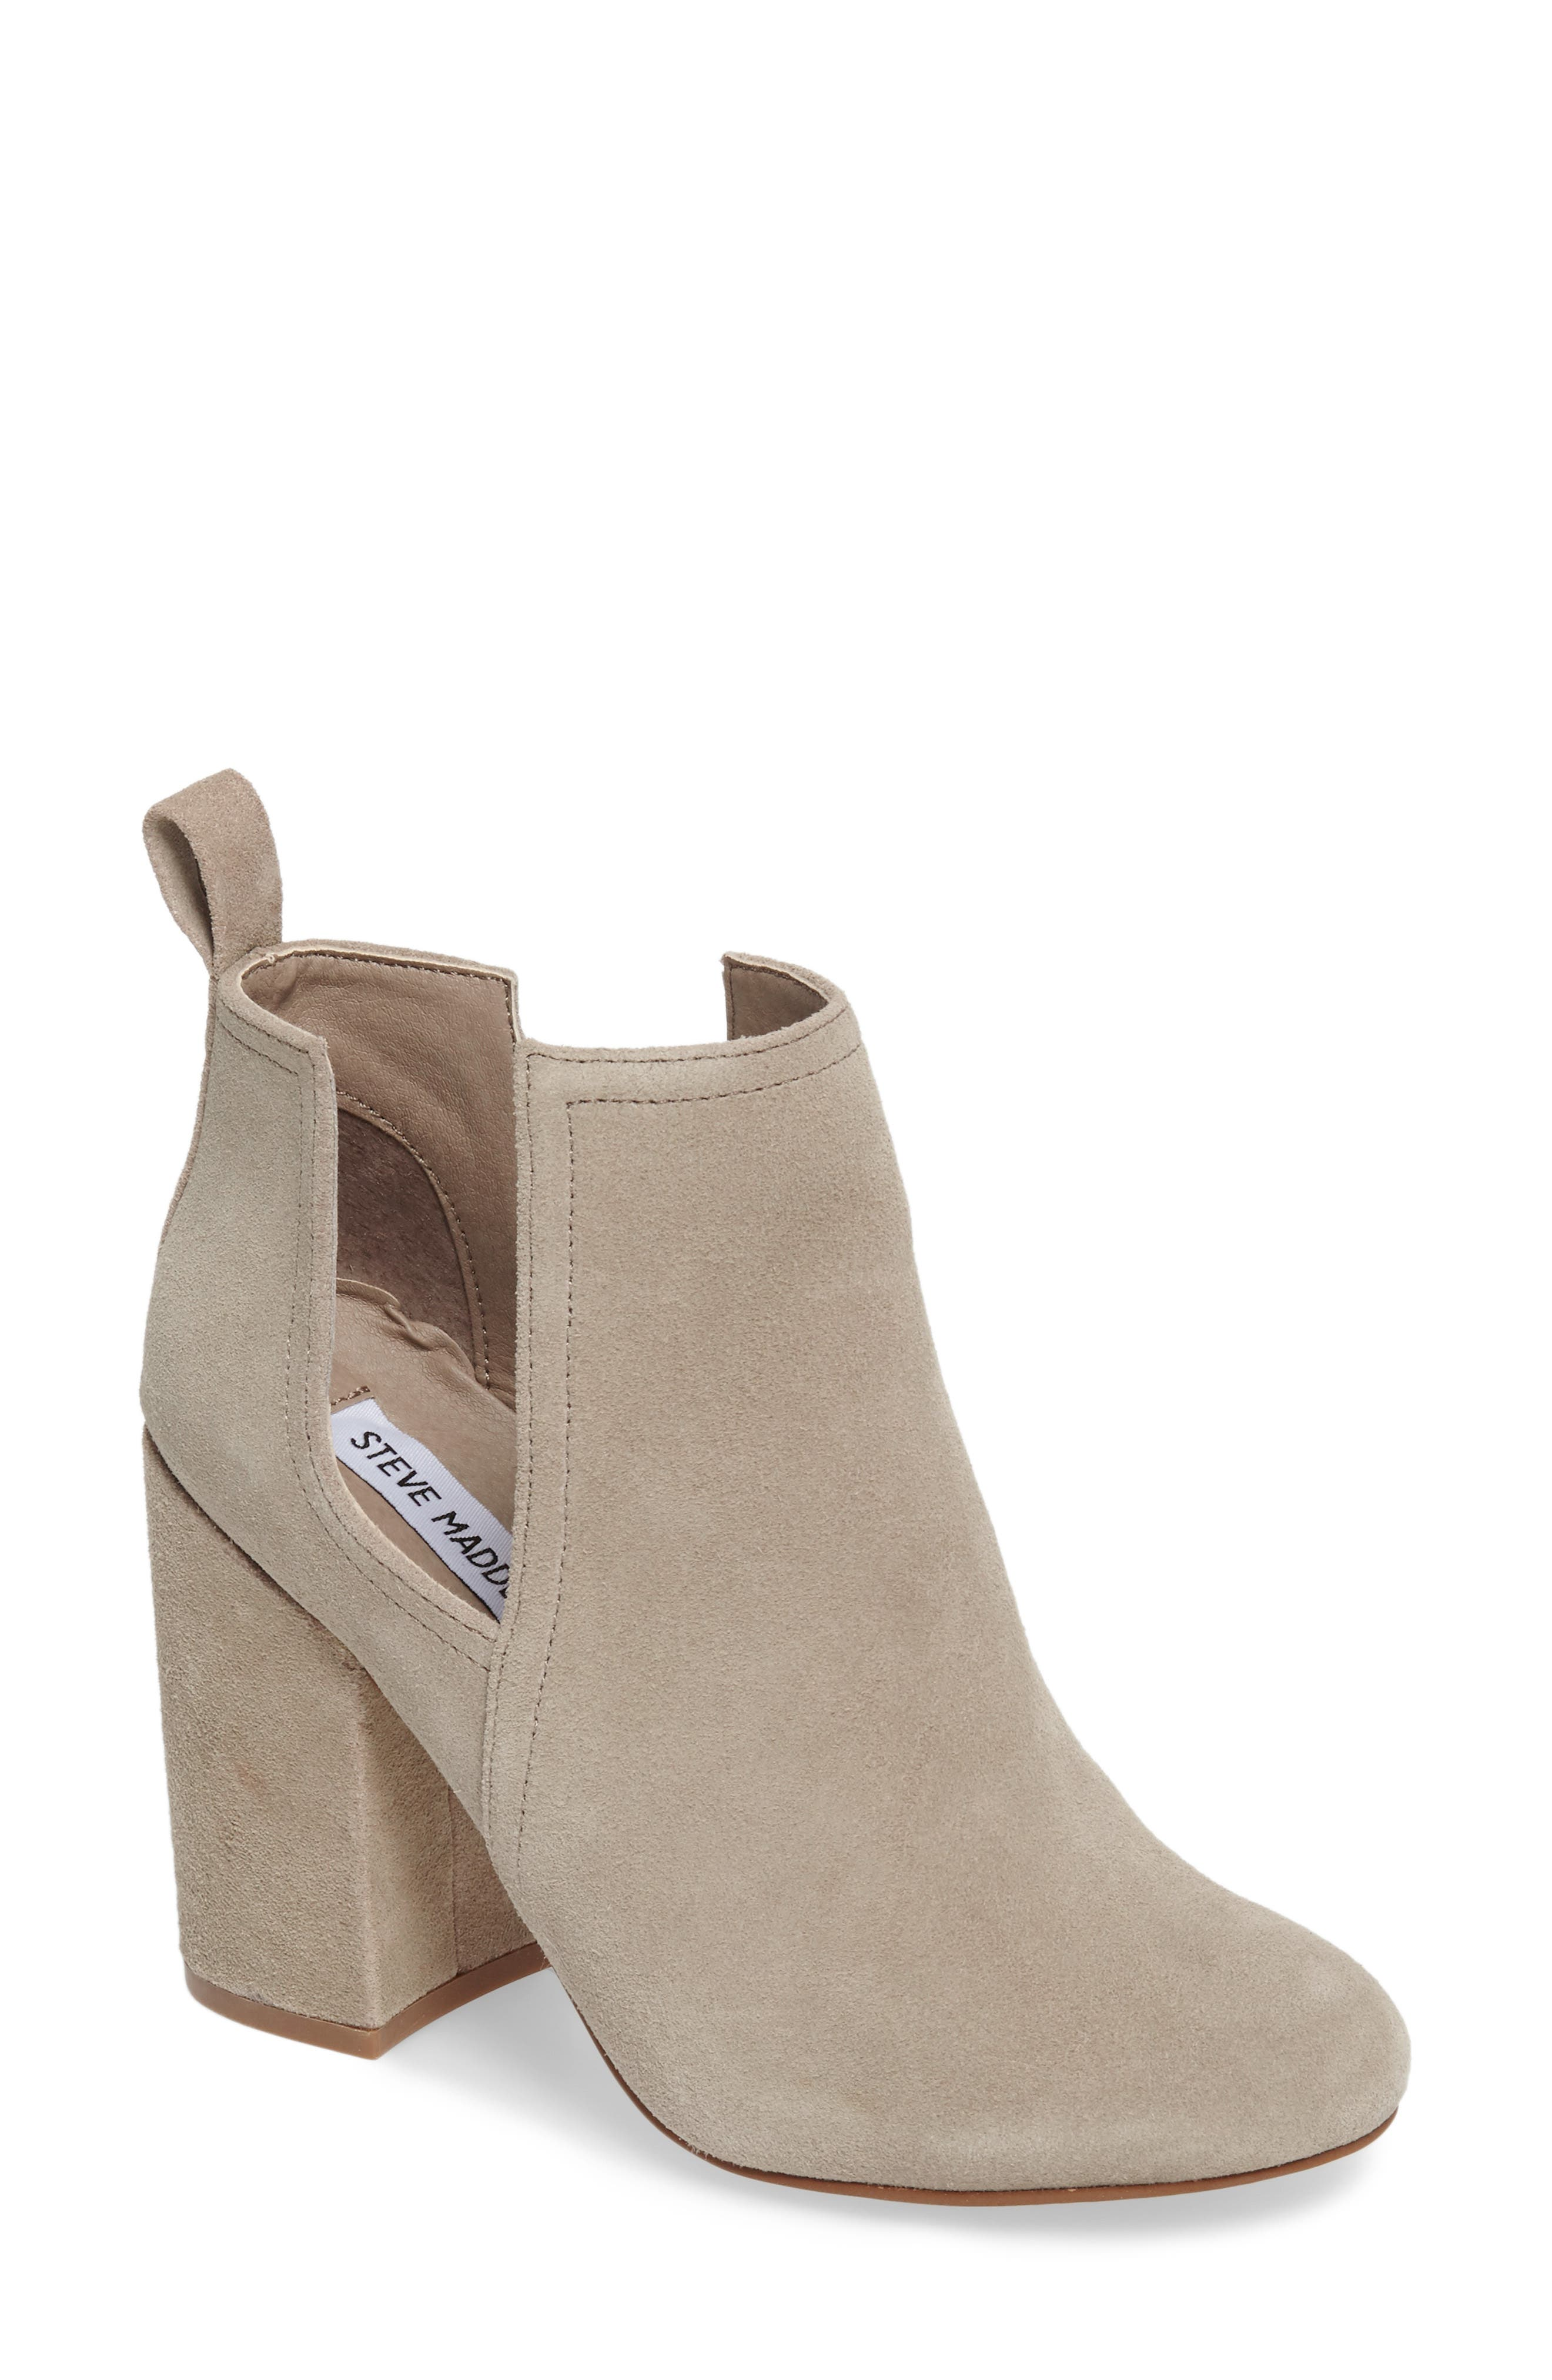 Naomi Cutout Bootie,                             Main thumbnail 1, color,                             Taupe Suede